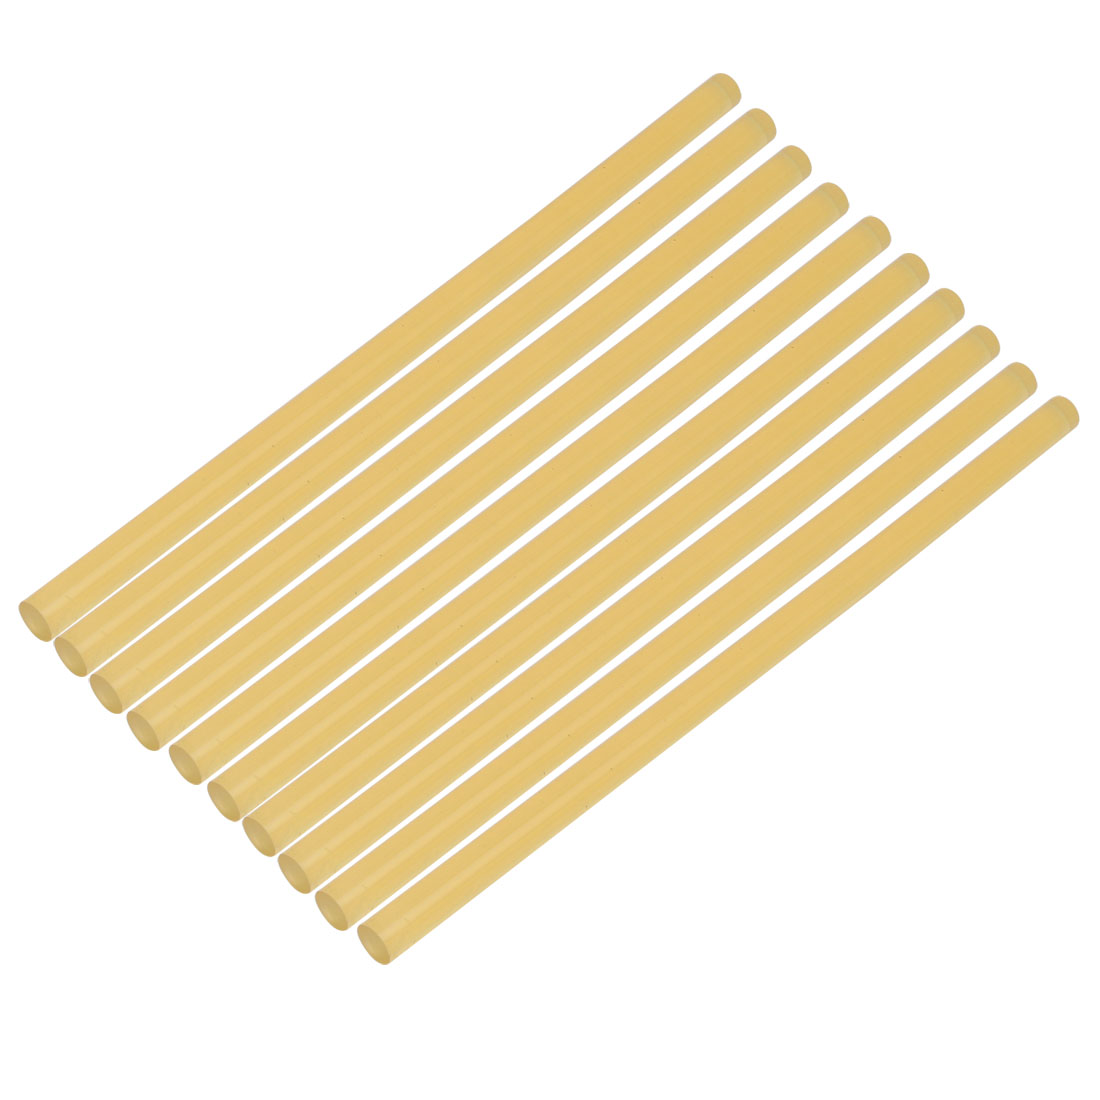 Unique Bargains 10pcs 11mmx270mm Economy Hot Melt Glue Sticks Yellow for DIY Small Craft Project